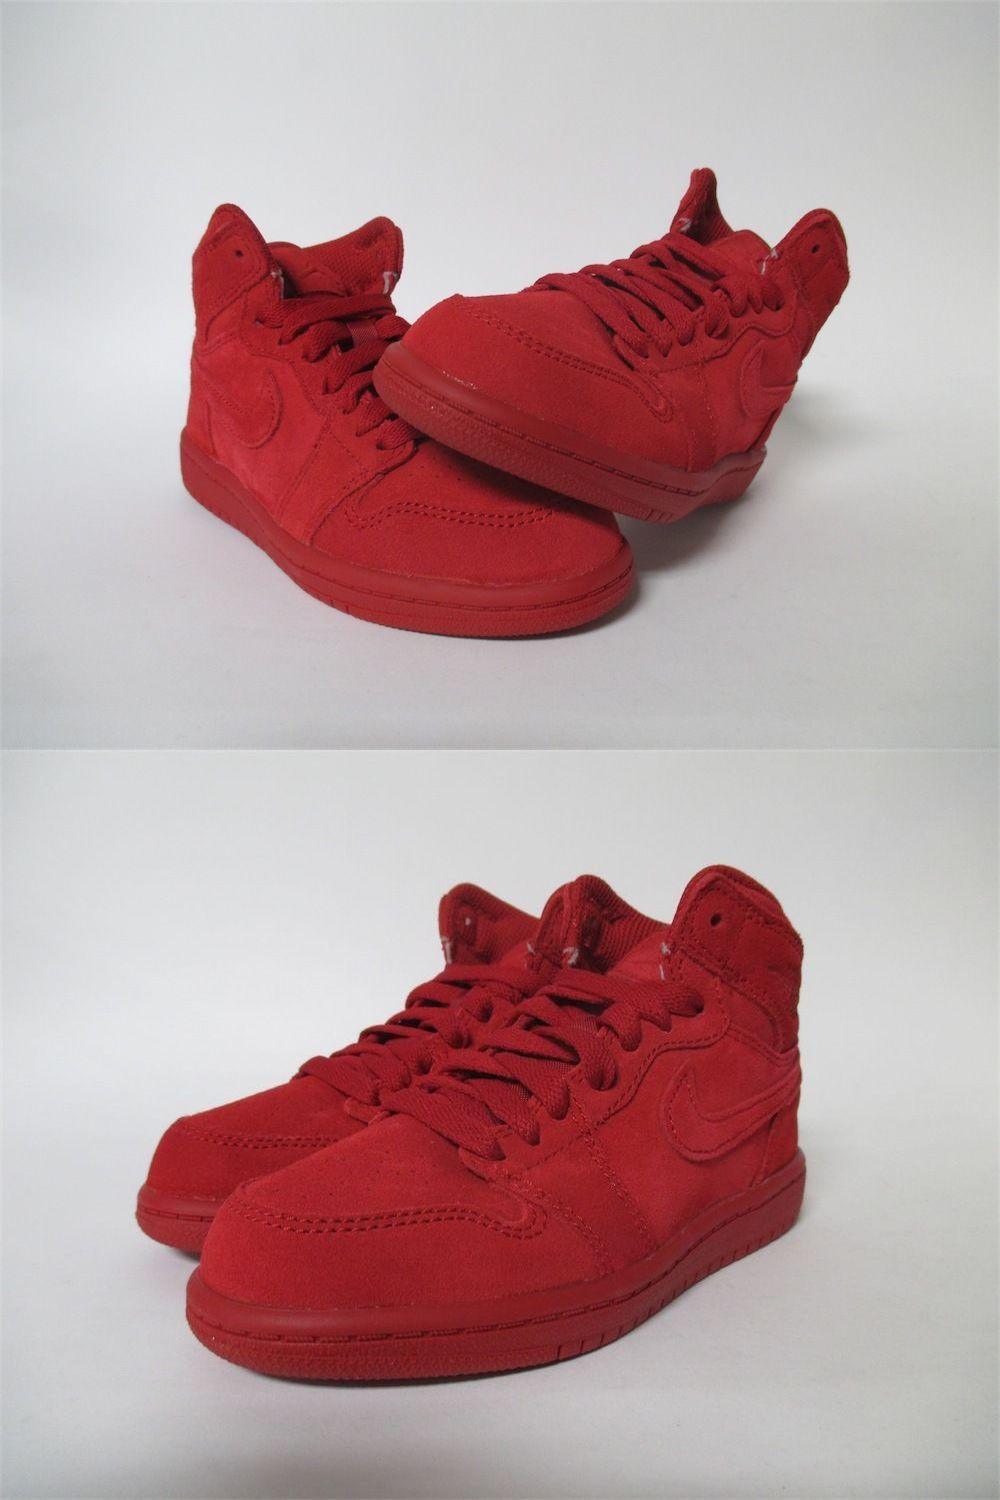 promo code 6b50a 04eb6 Unisex Shoes 155202  Air Jordan 1 Retro High Ps Gym Red Suede Youth Pre  School Sizes 705303-603 -  BUY IT NOW ONLY   49.99 on eBay!